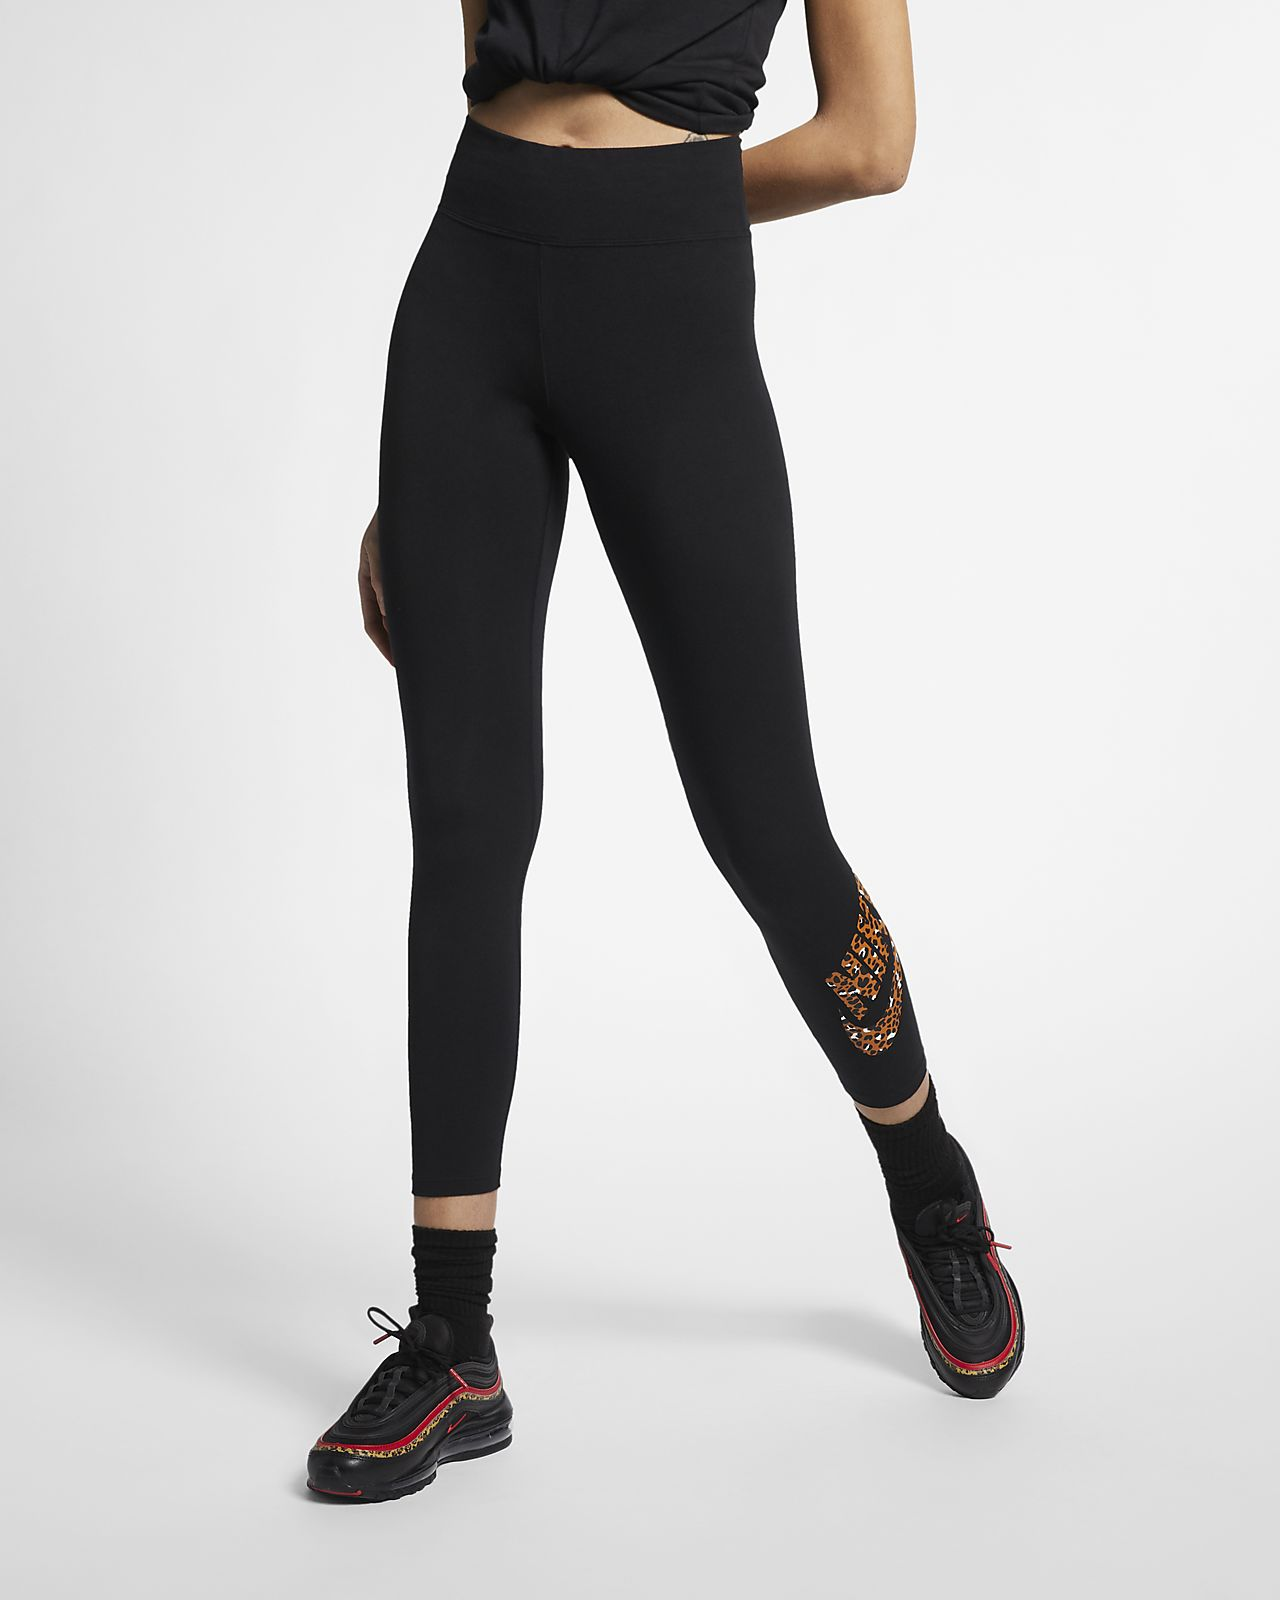 Leggings Nike Sportswear Animal Print för kvinnor